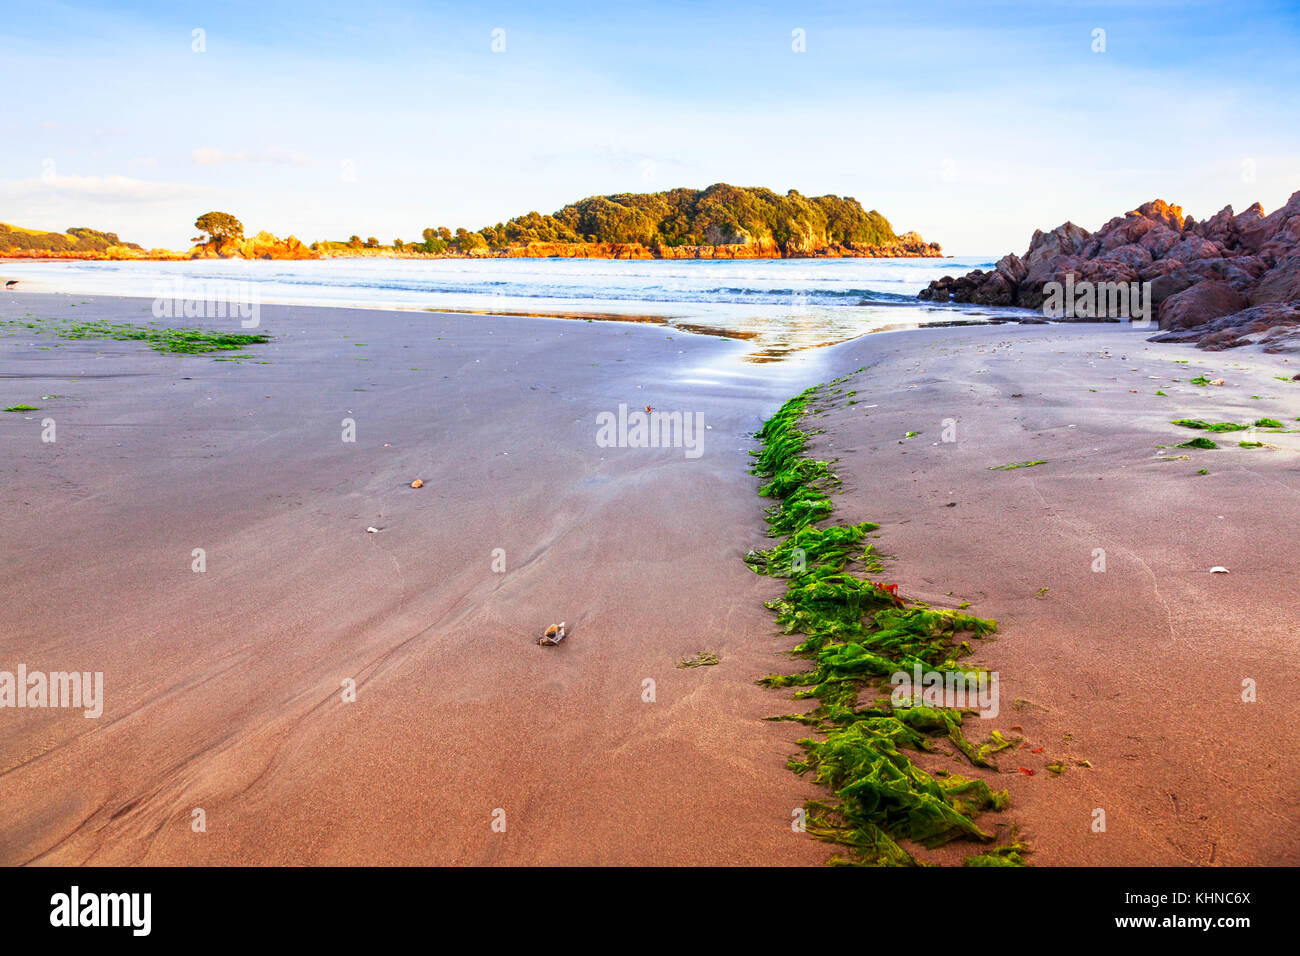 Early morning on the beach at Mount Maunganui, Bay of Plenty, New Zealand.Said to be the best beach in New Zealand - Stock Image